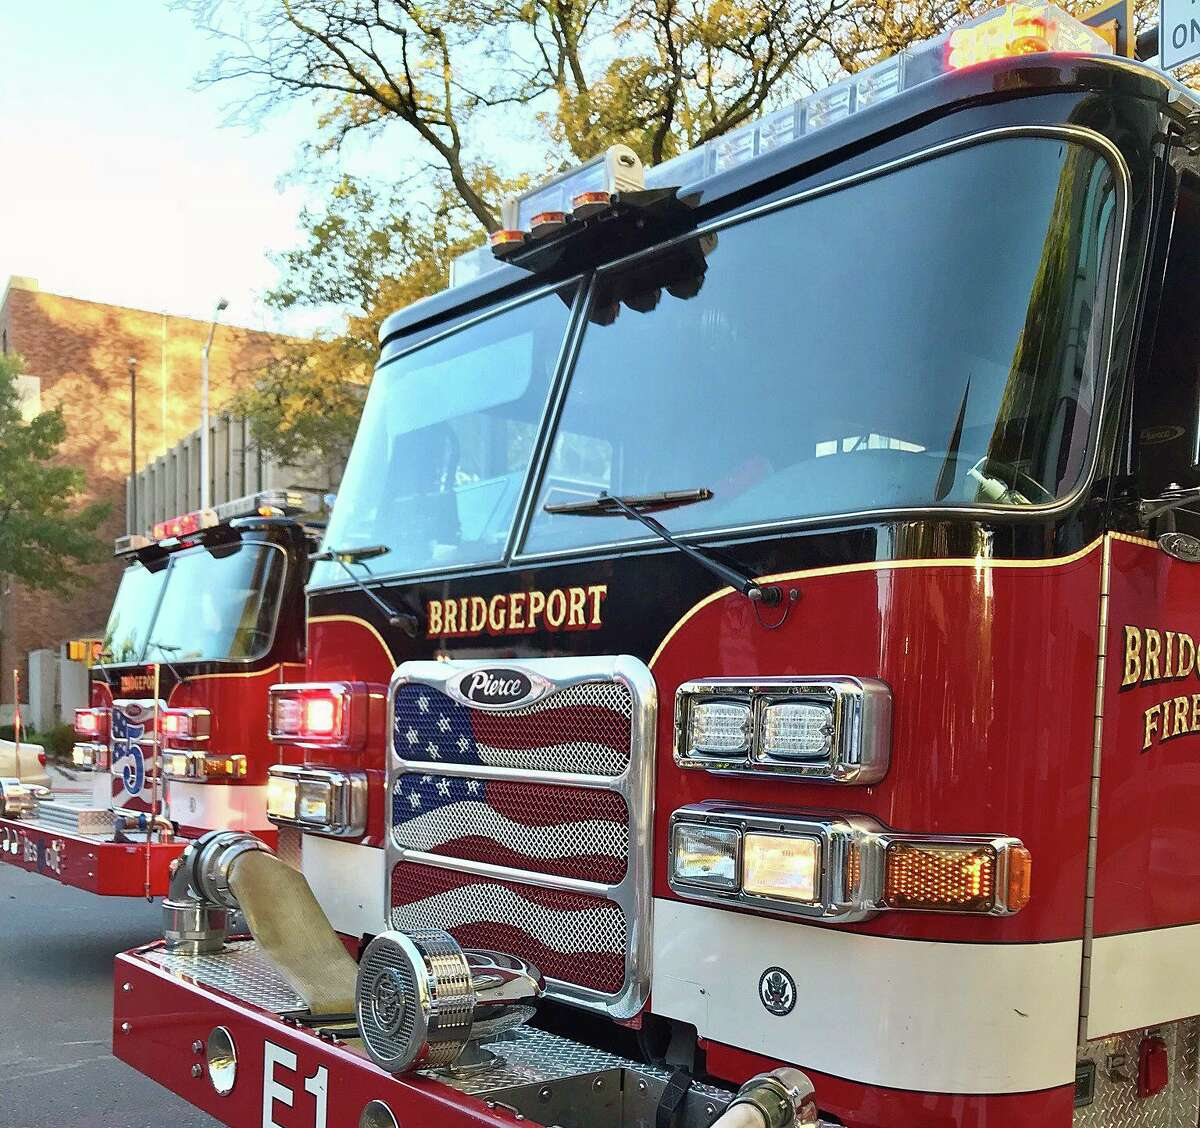 Fire crews extinguished flames on the second and third floors of a residence in Bridgeport, Conn., on Monday, Aug. 30, 2021, officials said.